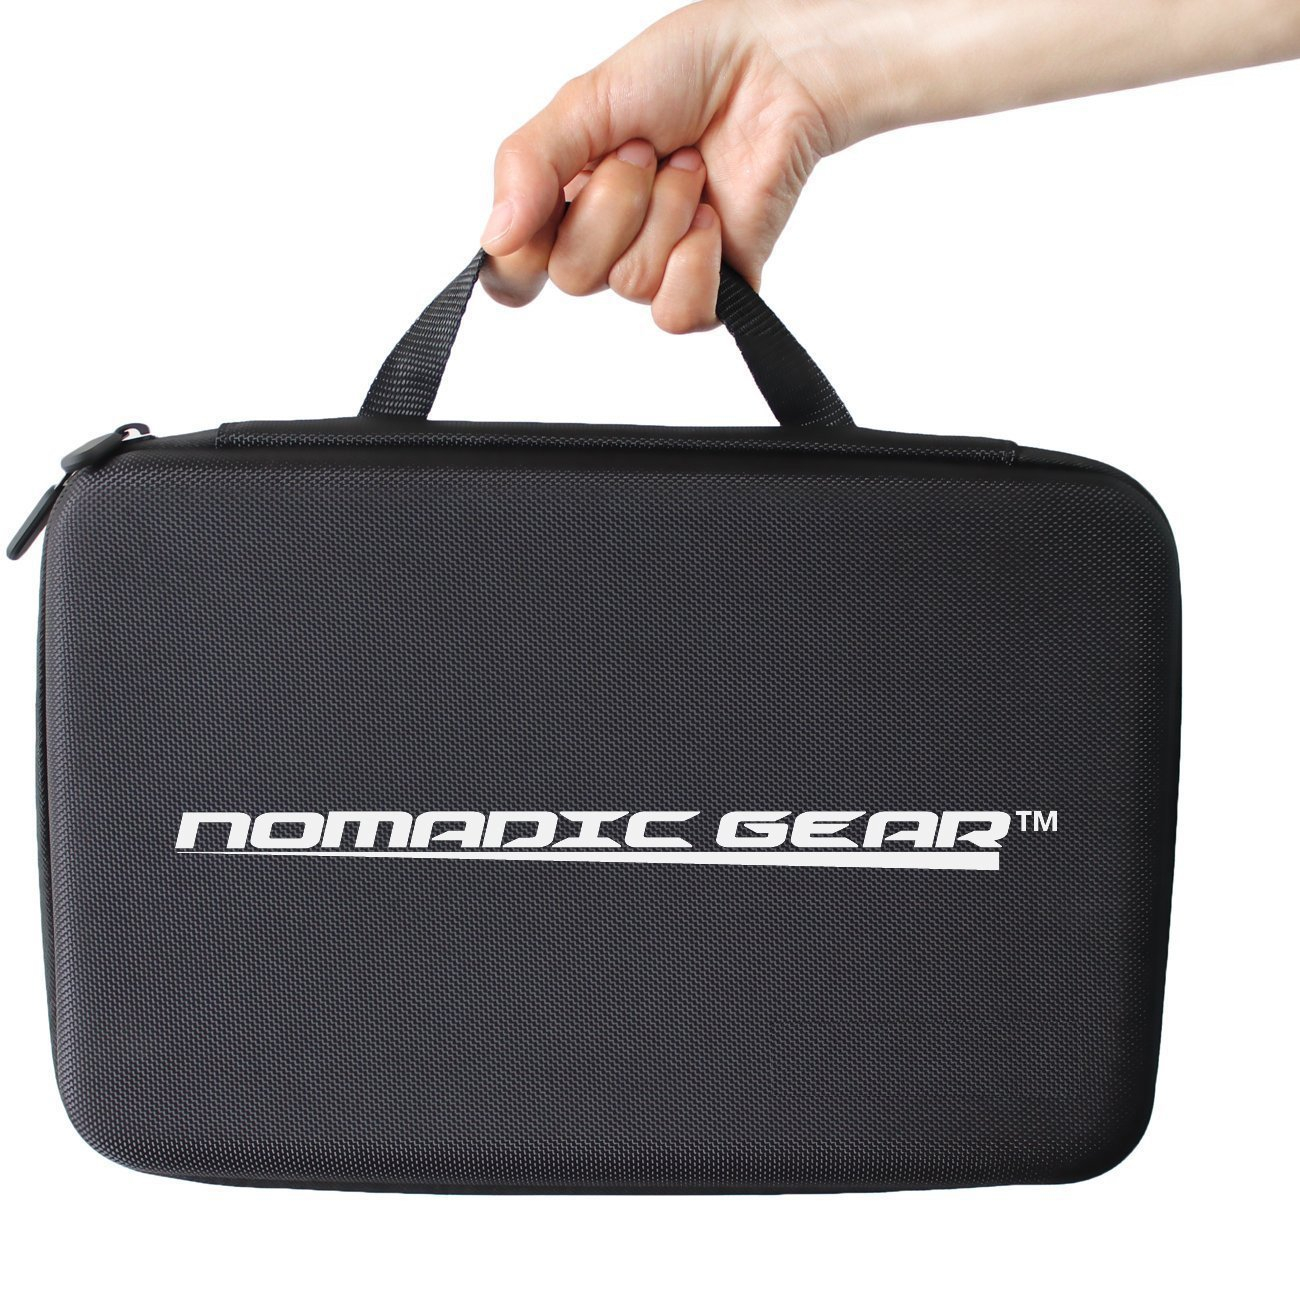 Nomadic Gear Large Carrying Case for GoPro, Sony Action Camera, Garmin, Ricoh Action Cam, SJCAM - Perfect for Travel and Storage - Versatile EVA Interior with Precise Fit Cut